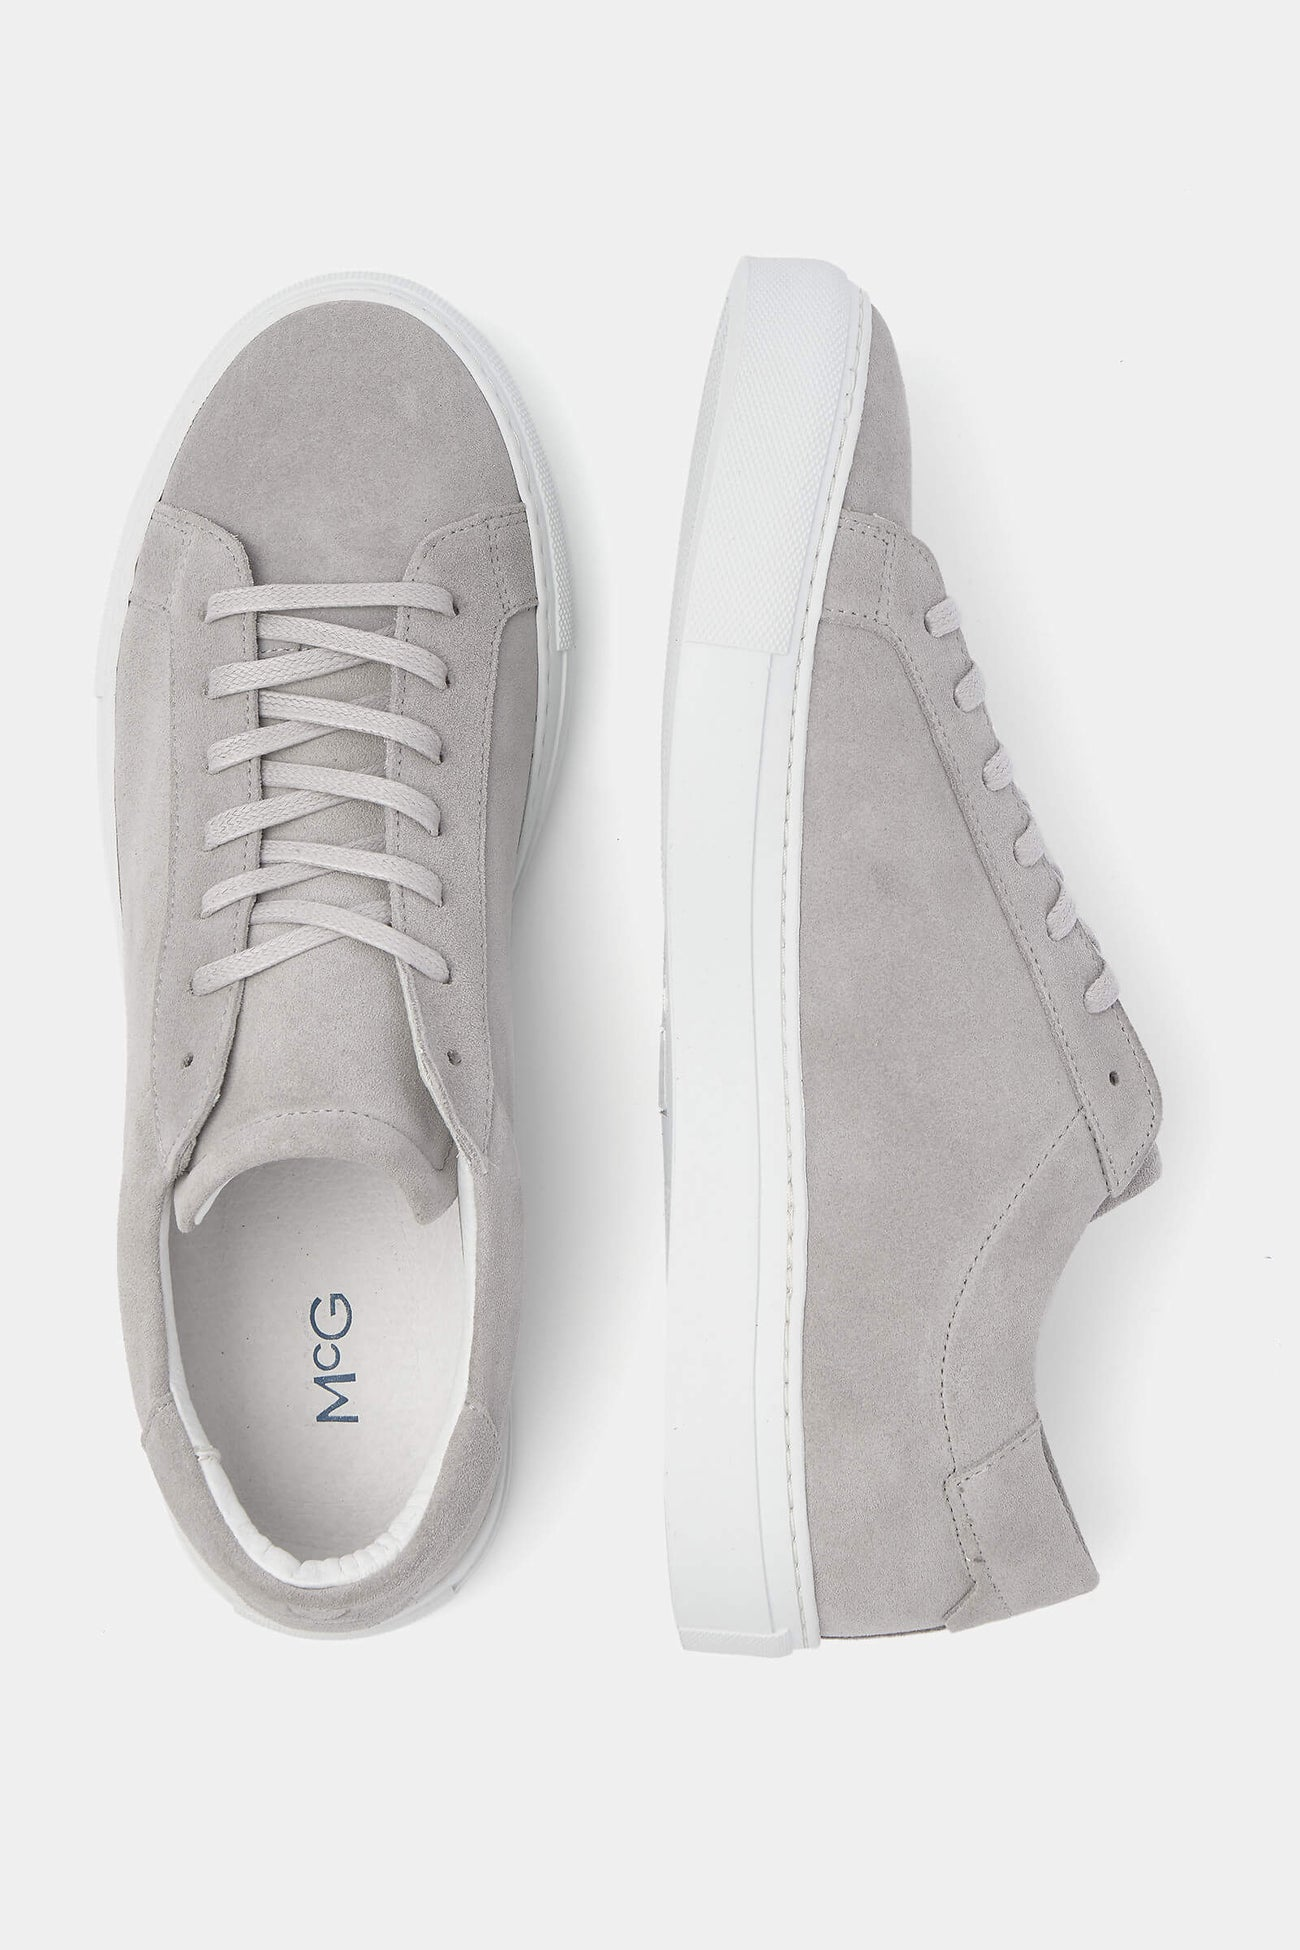 McG Light Gray suede sneakers